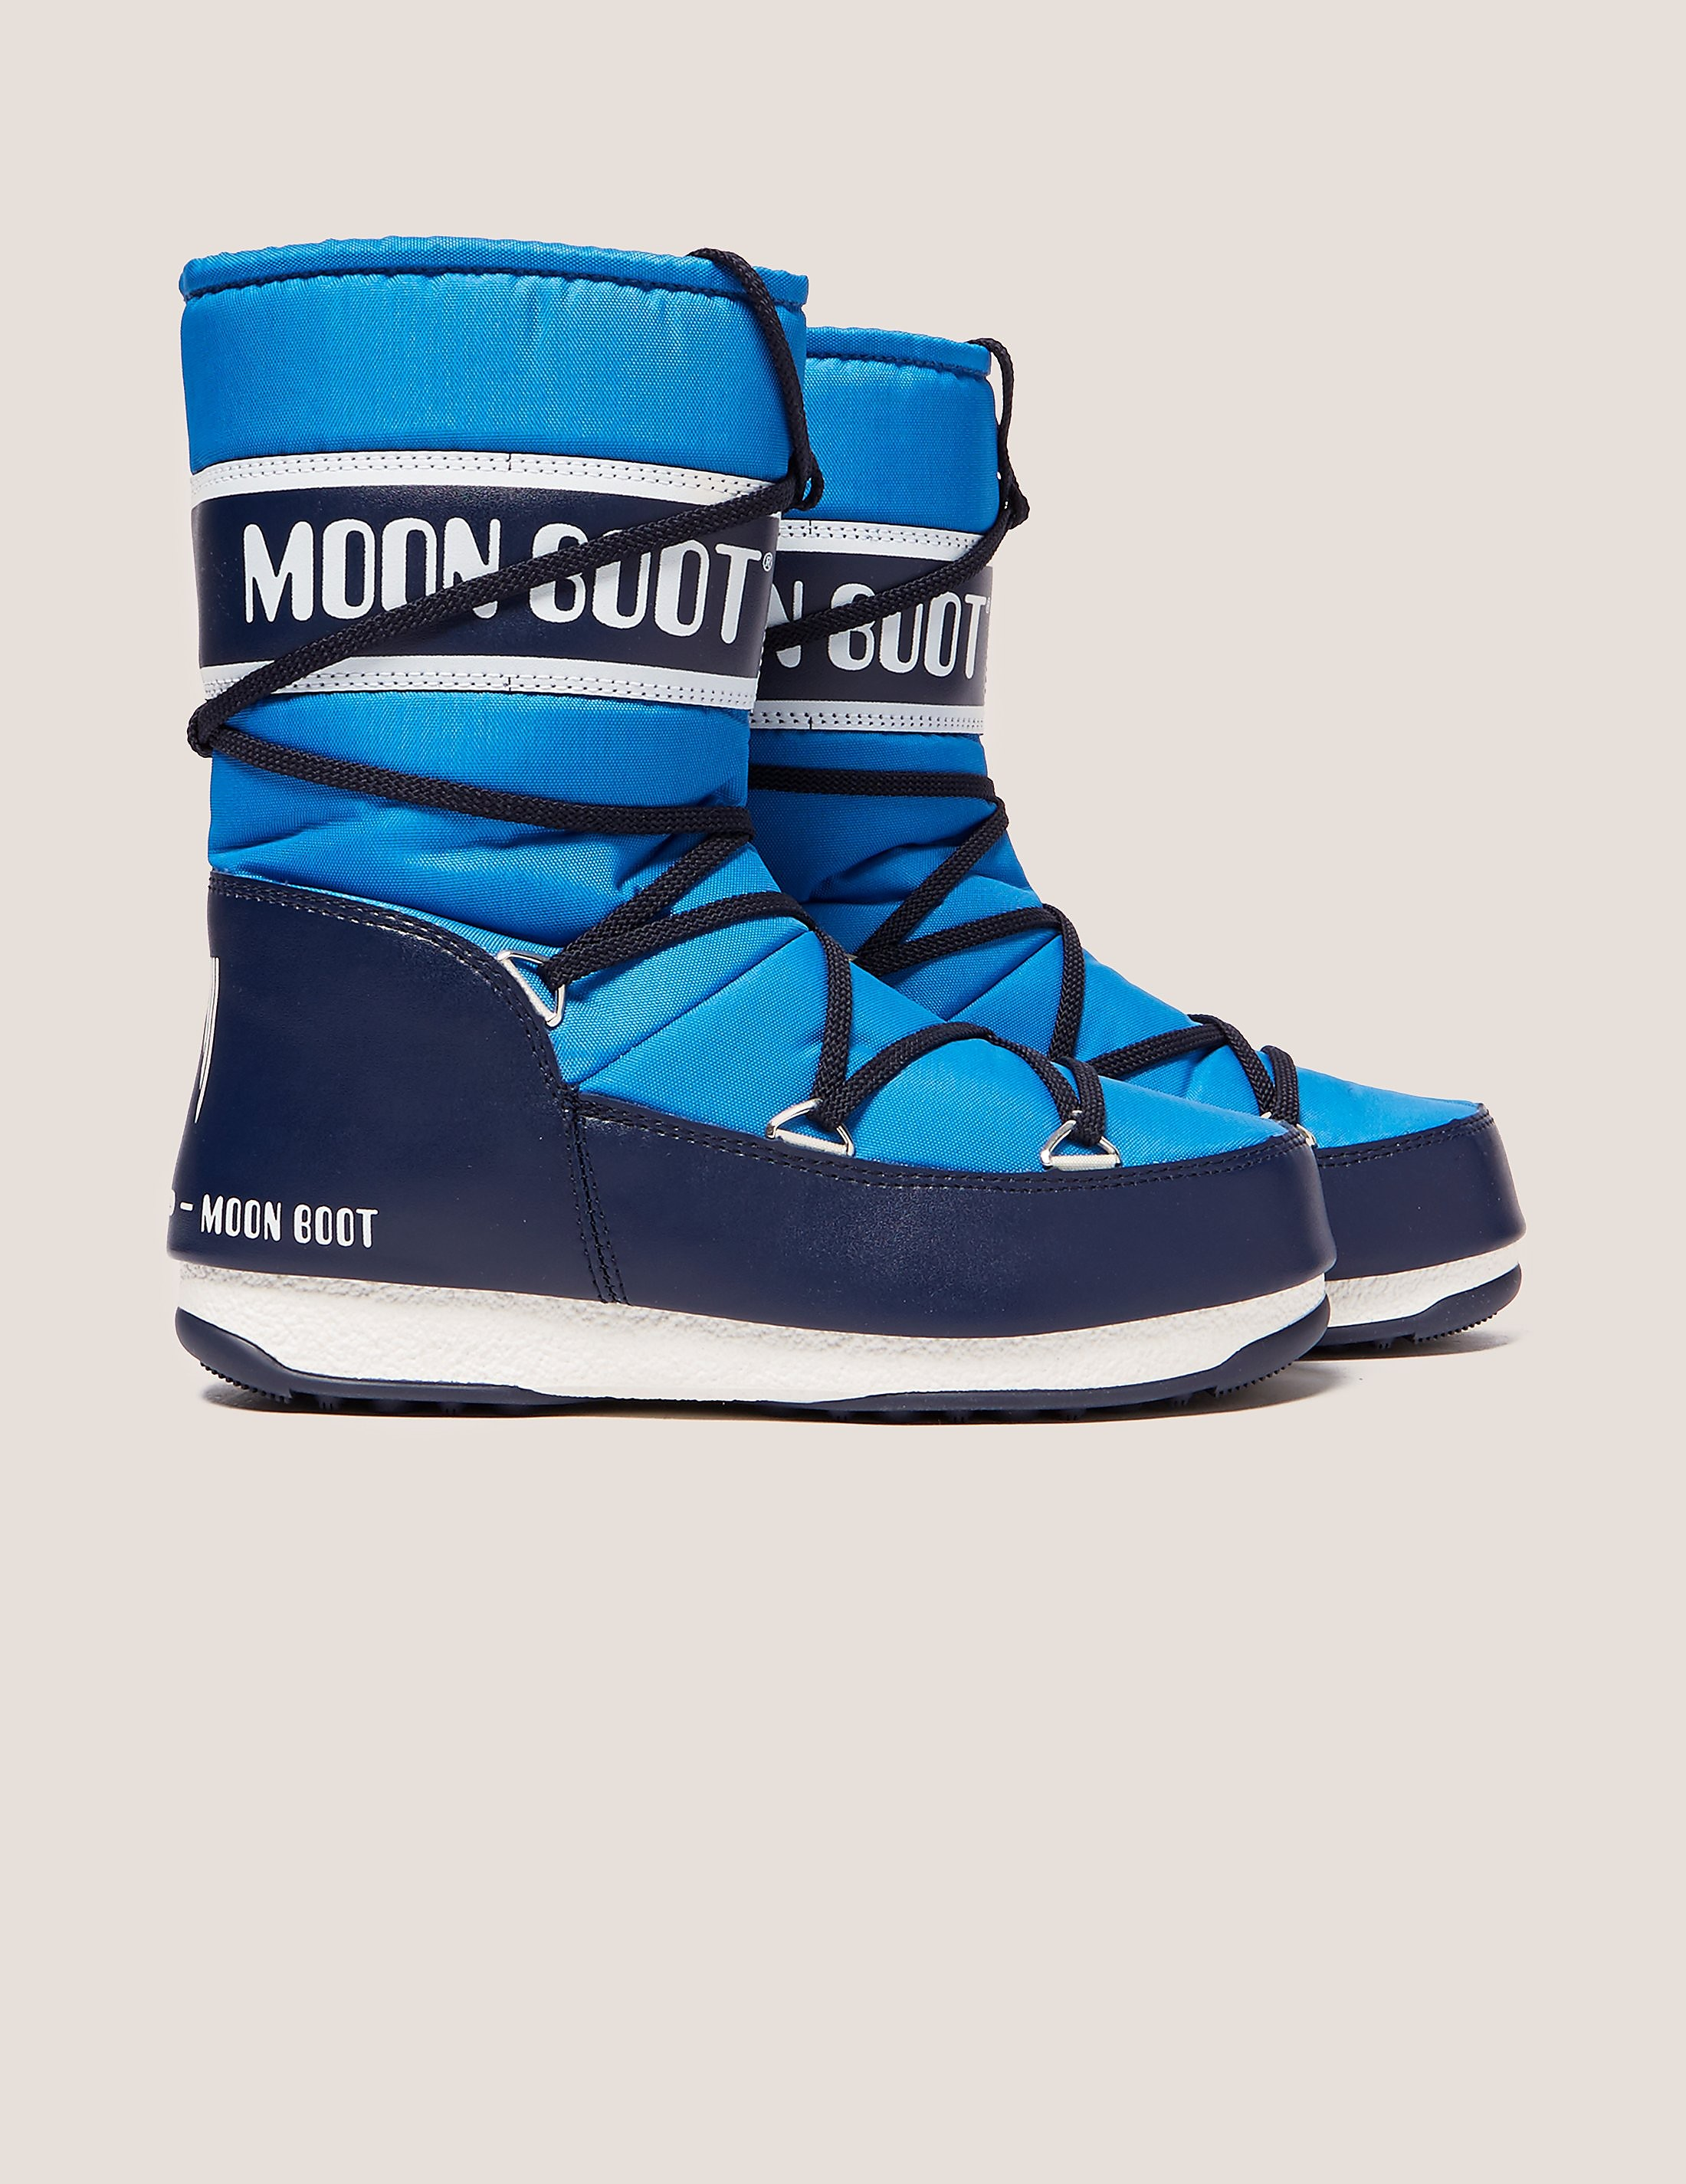 Moon Boot Tecnica Moonboot